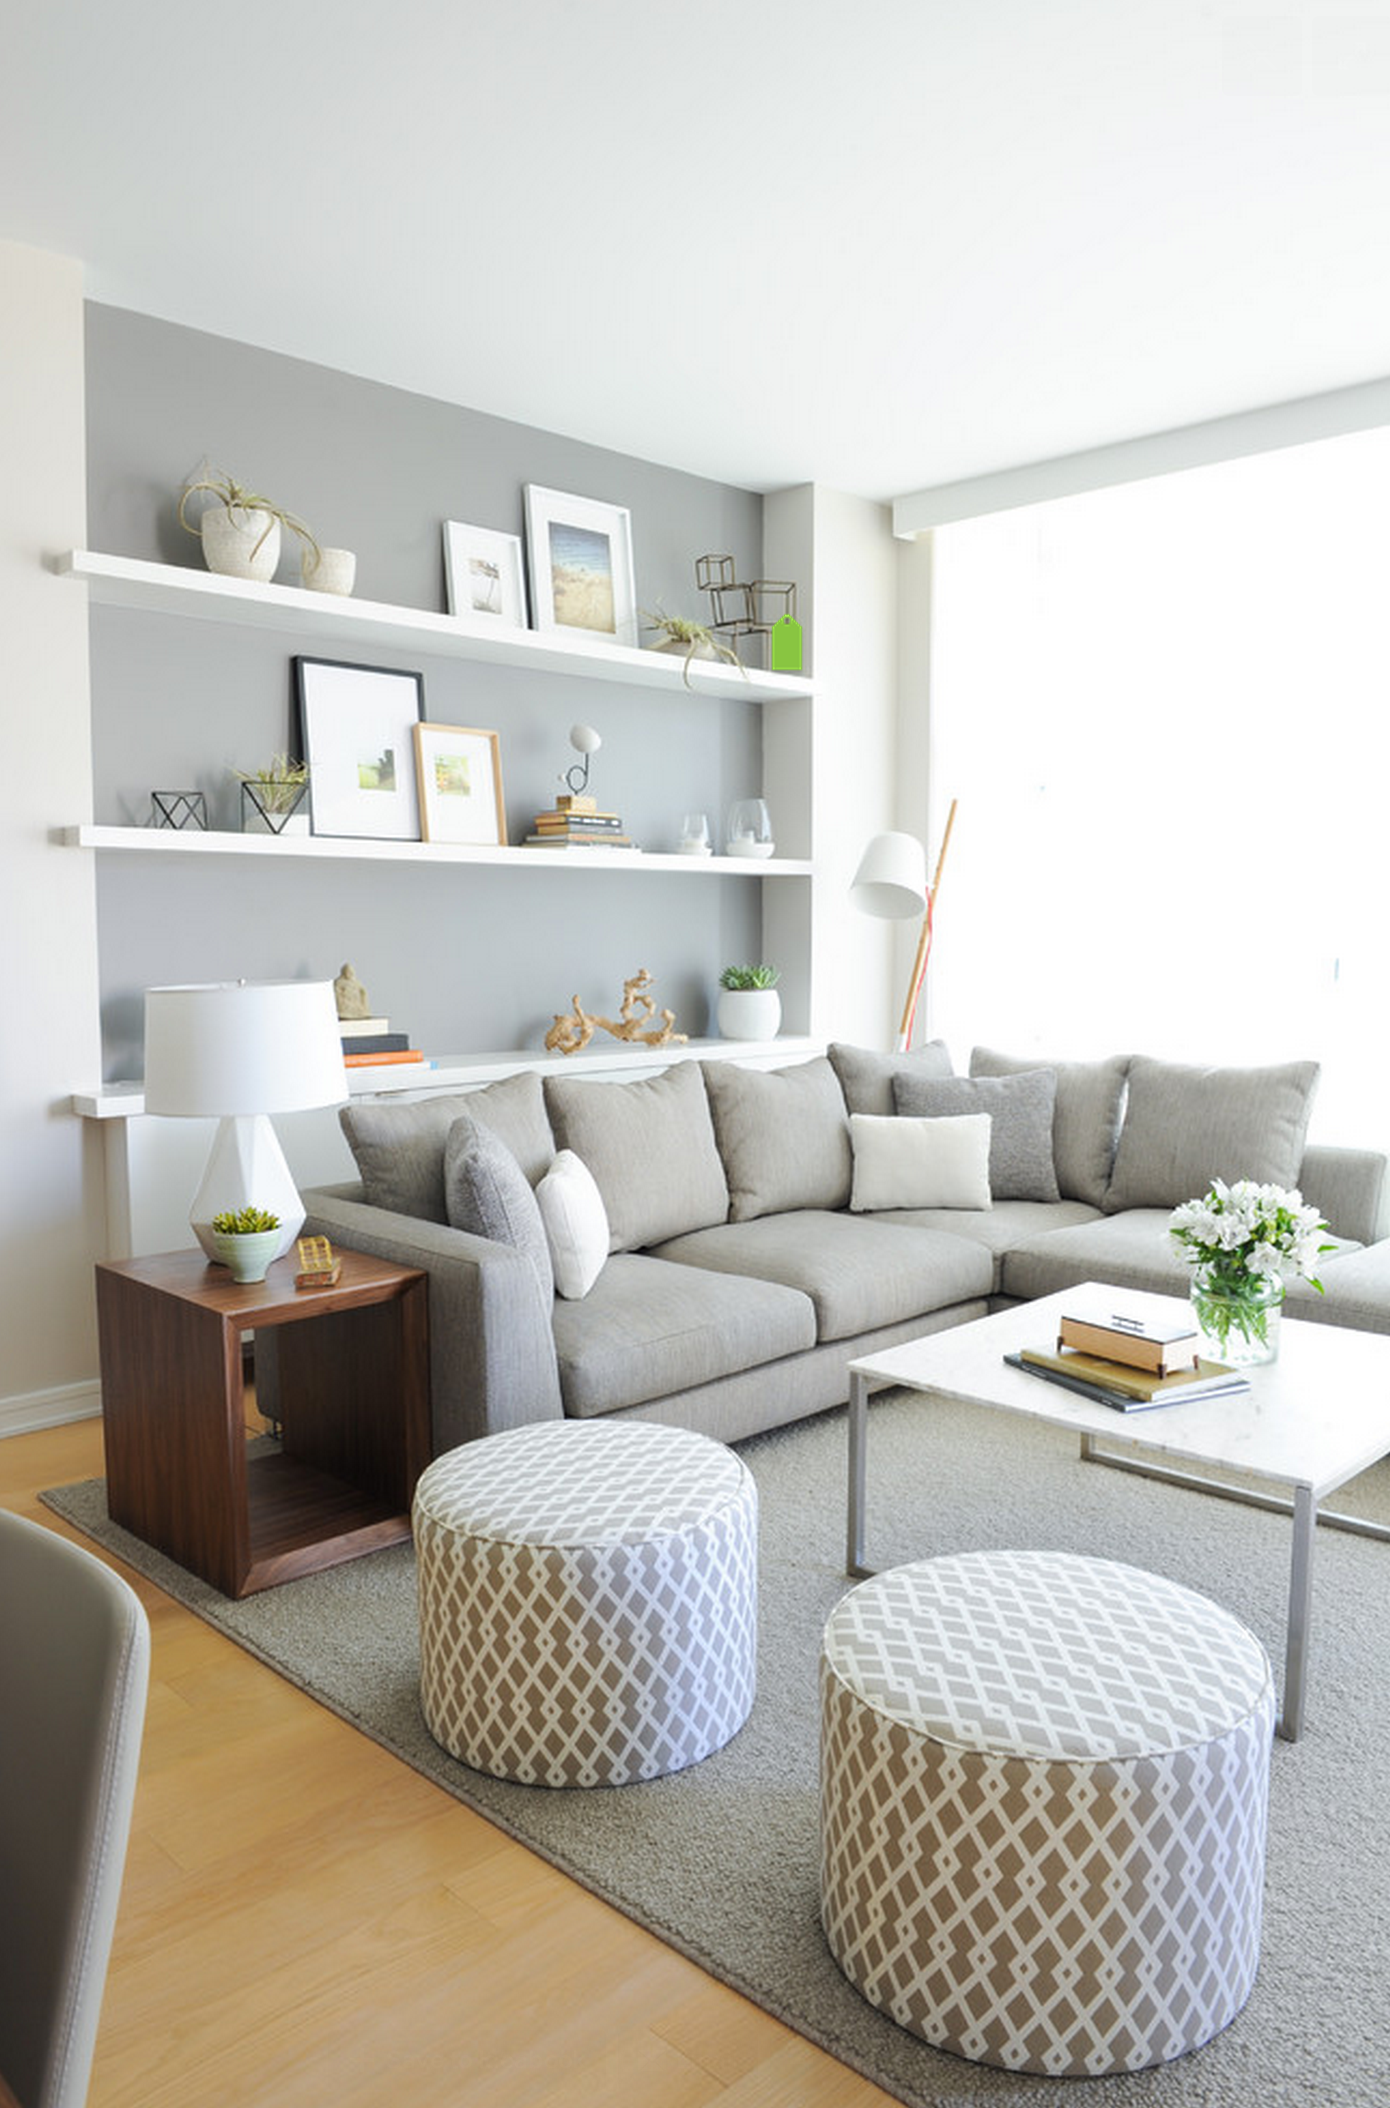 5 home Feng Shui tips to create positive energy - Bellacor ...